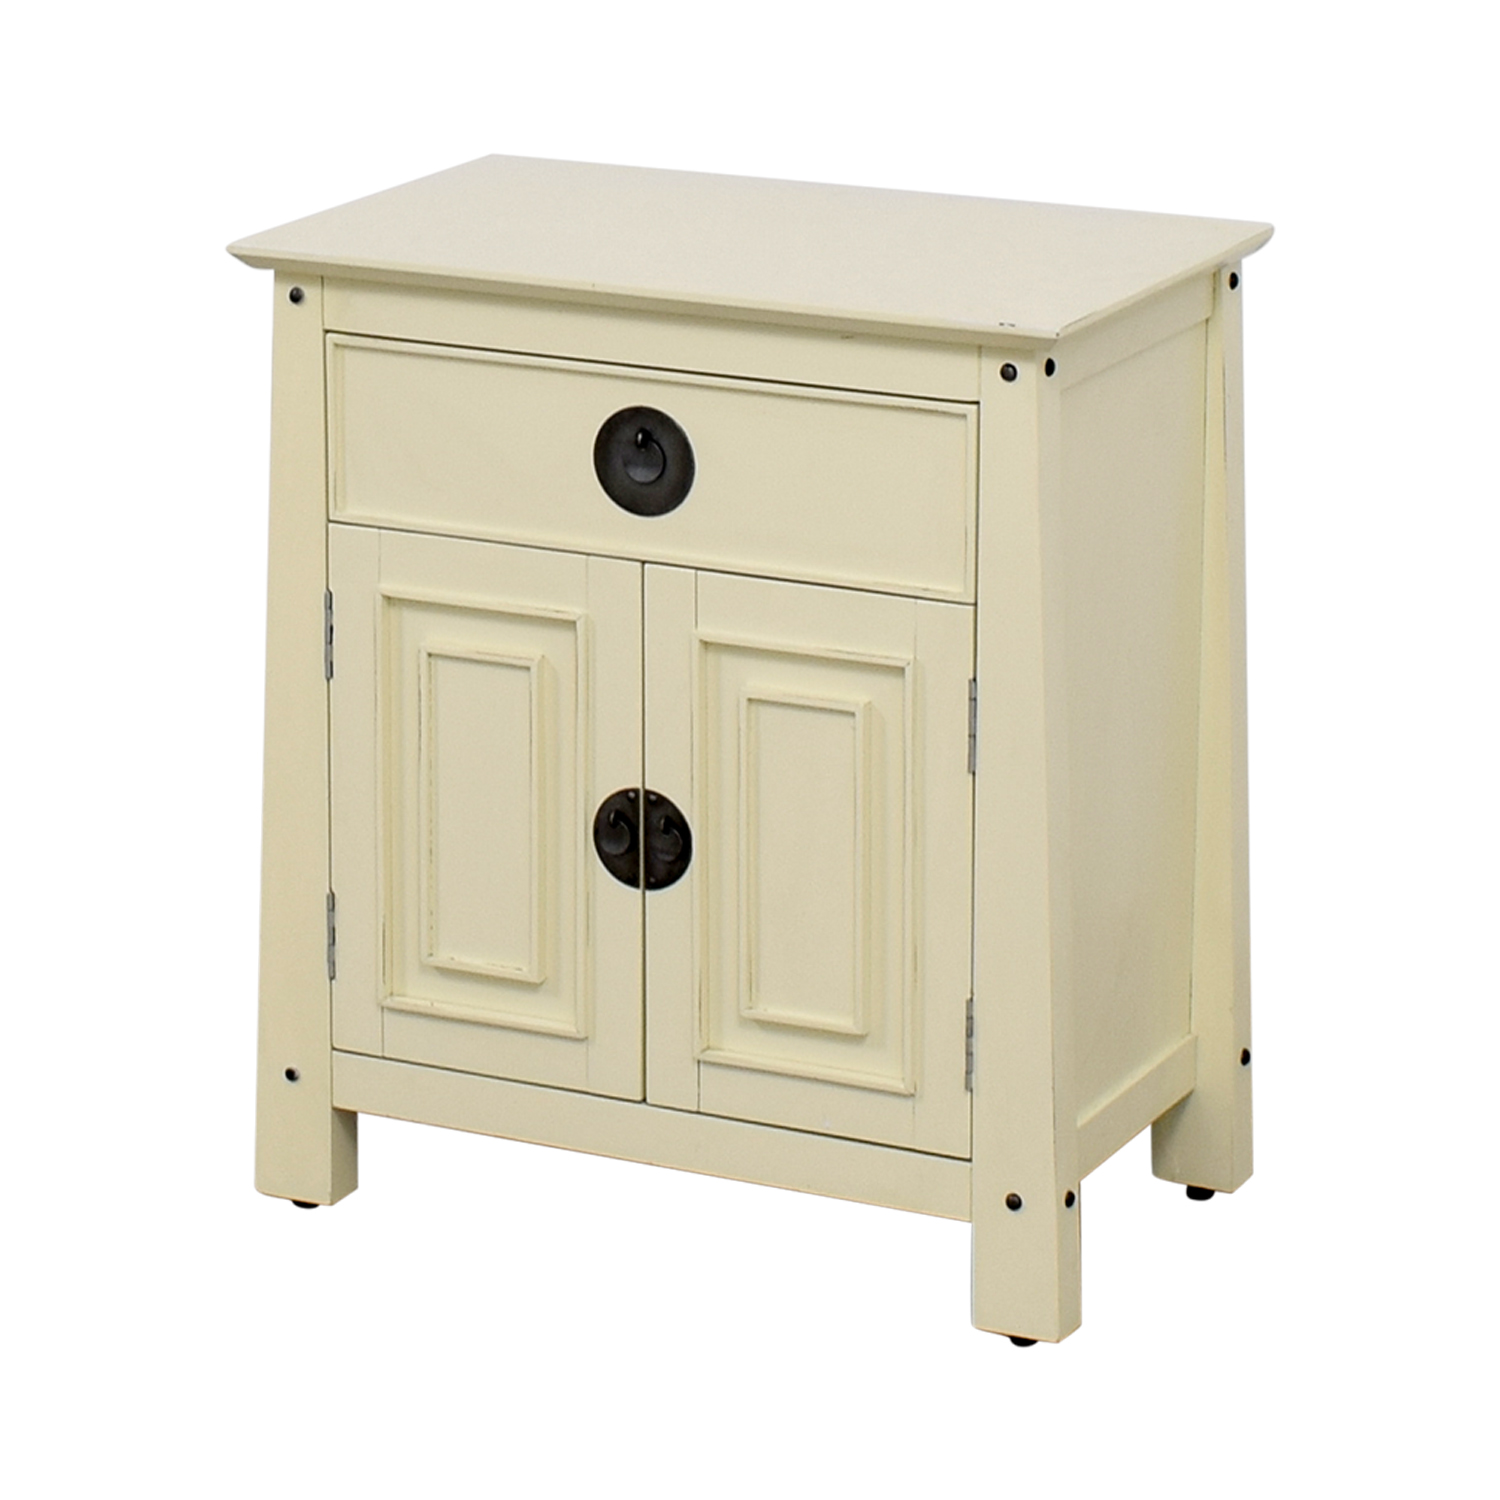 Pier 1 Pier 1 Shanghai Collection Bedside Chest Cream